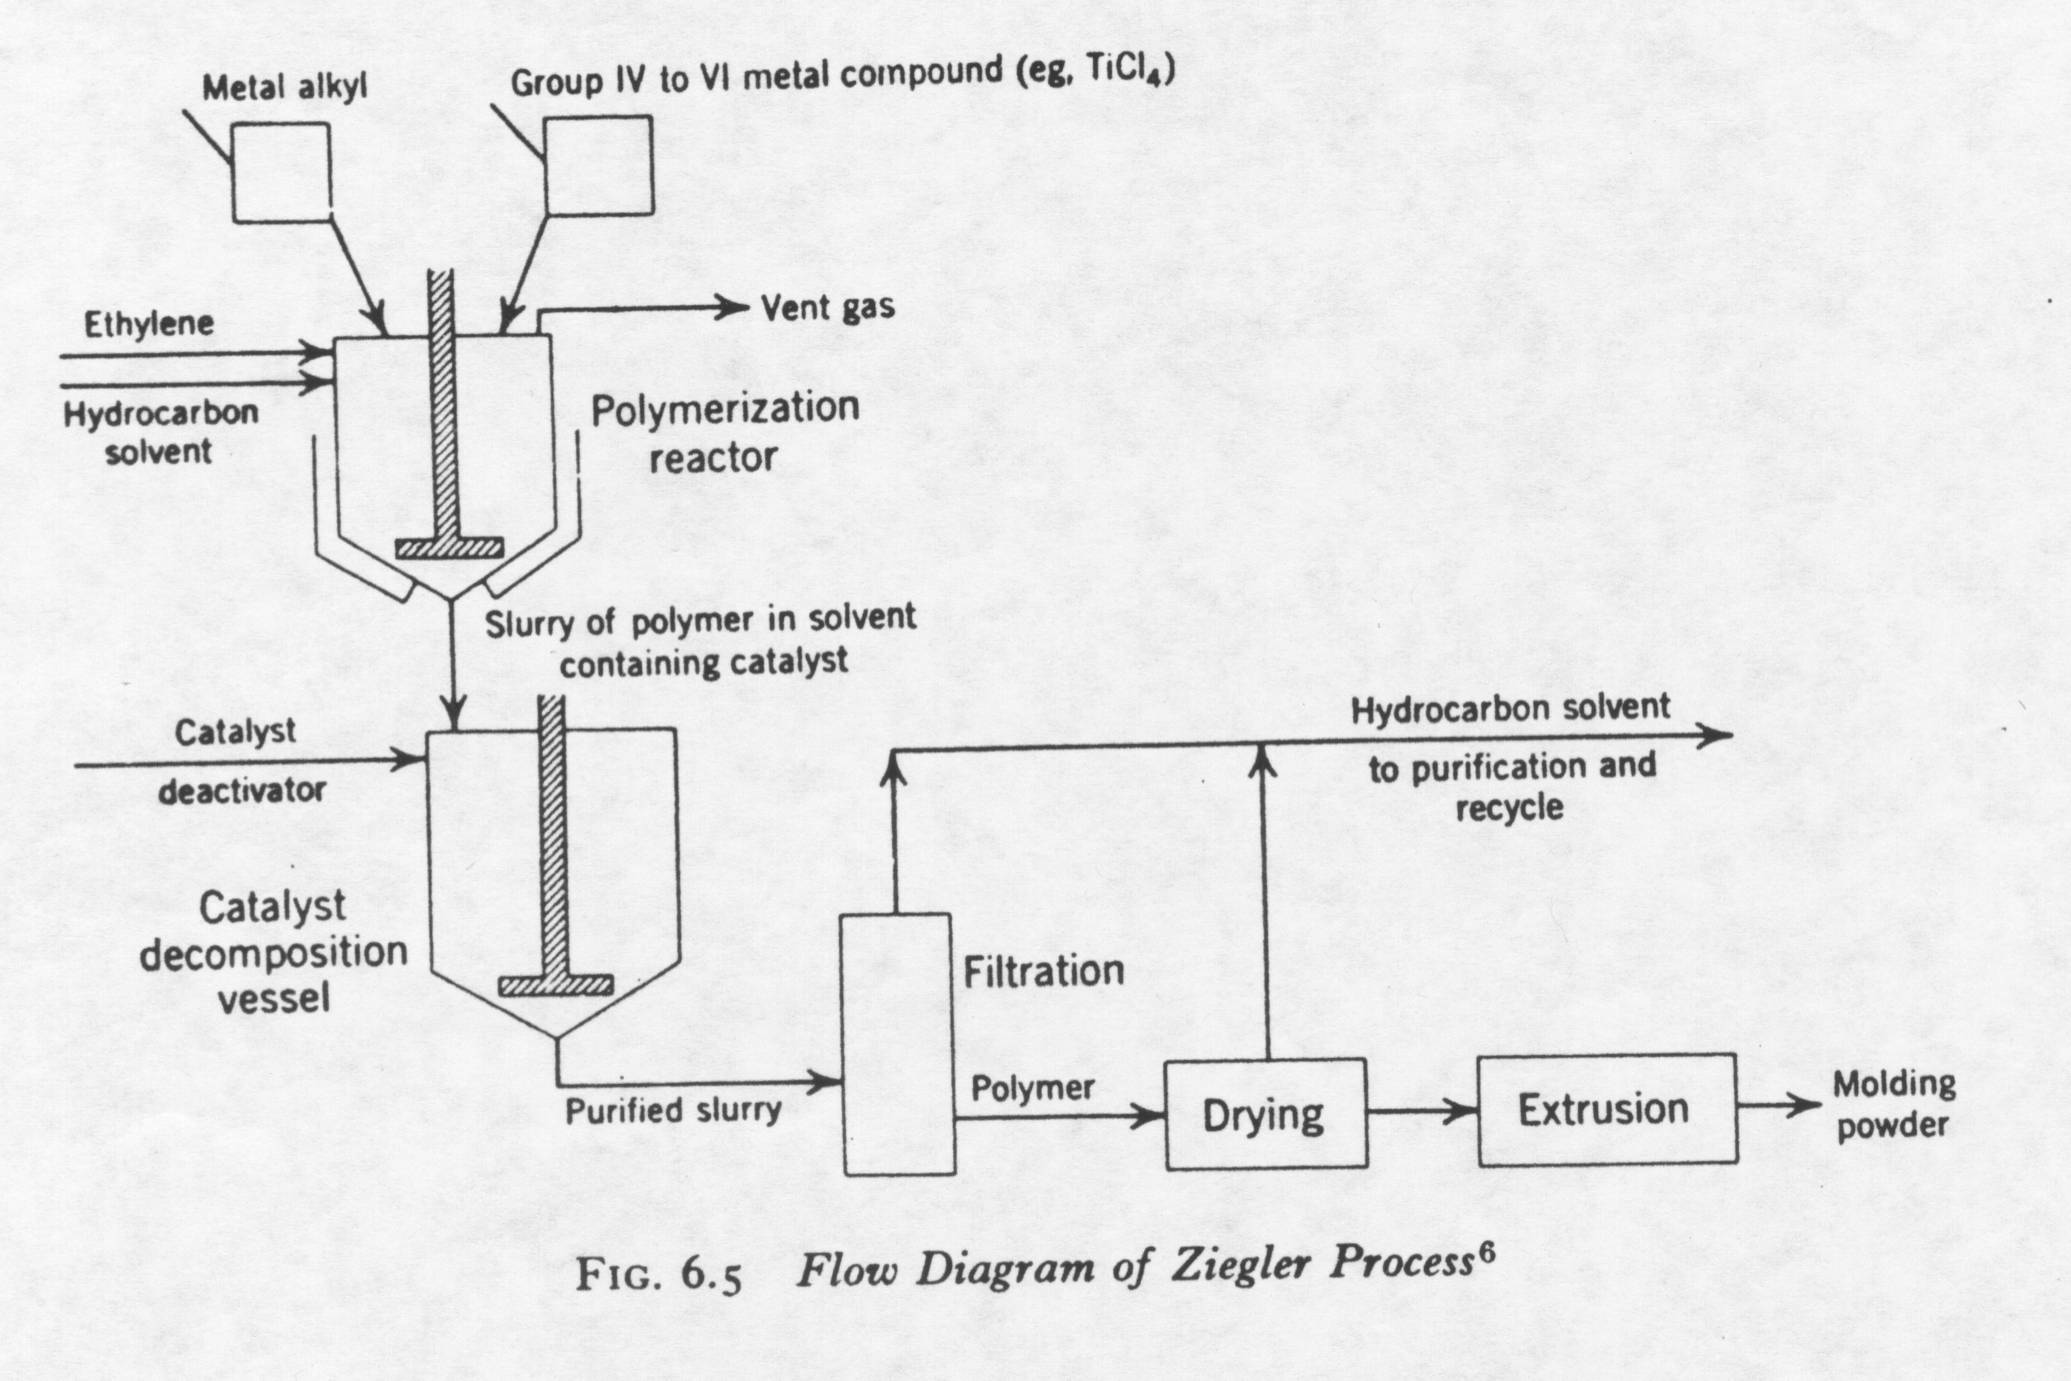 Ce435 Proj Process Flow Diagram Reaction Injection Moulding A Brief Description Of The Ziegler Will Be Explained In Following Paragraph First Organometallic Compound Ie Titanium Tetrachloride Is